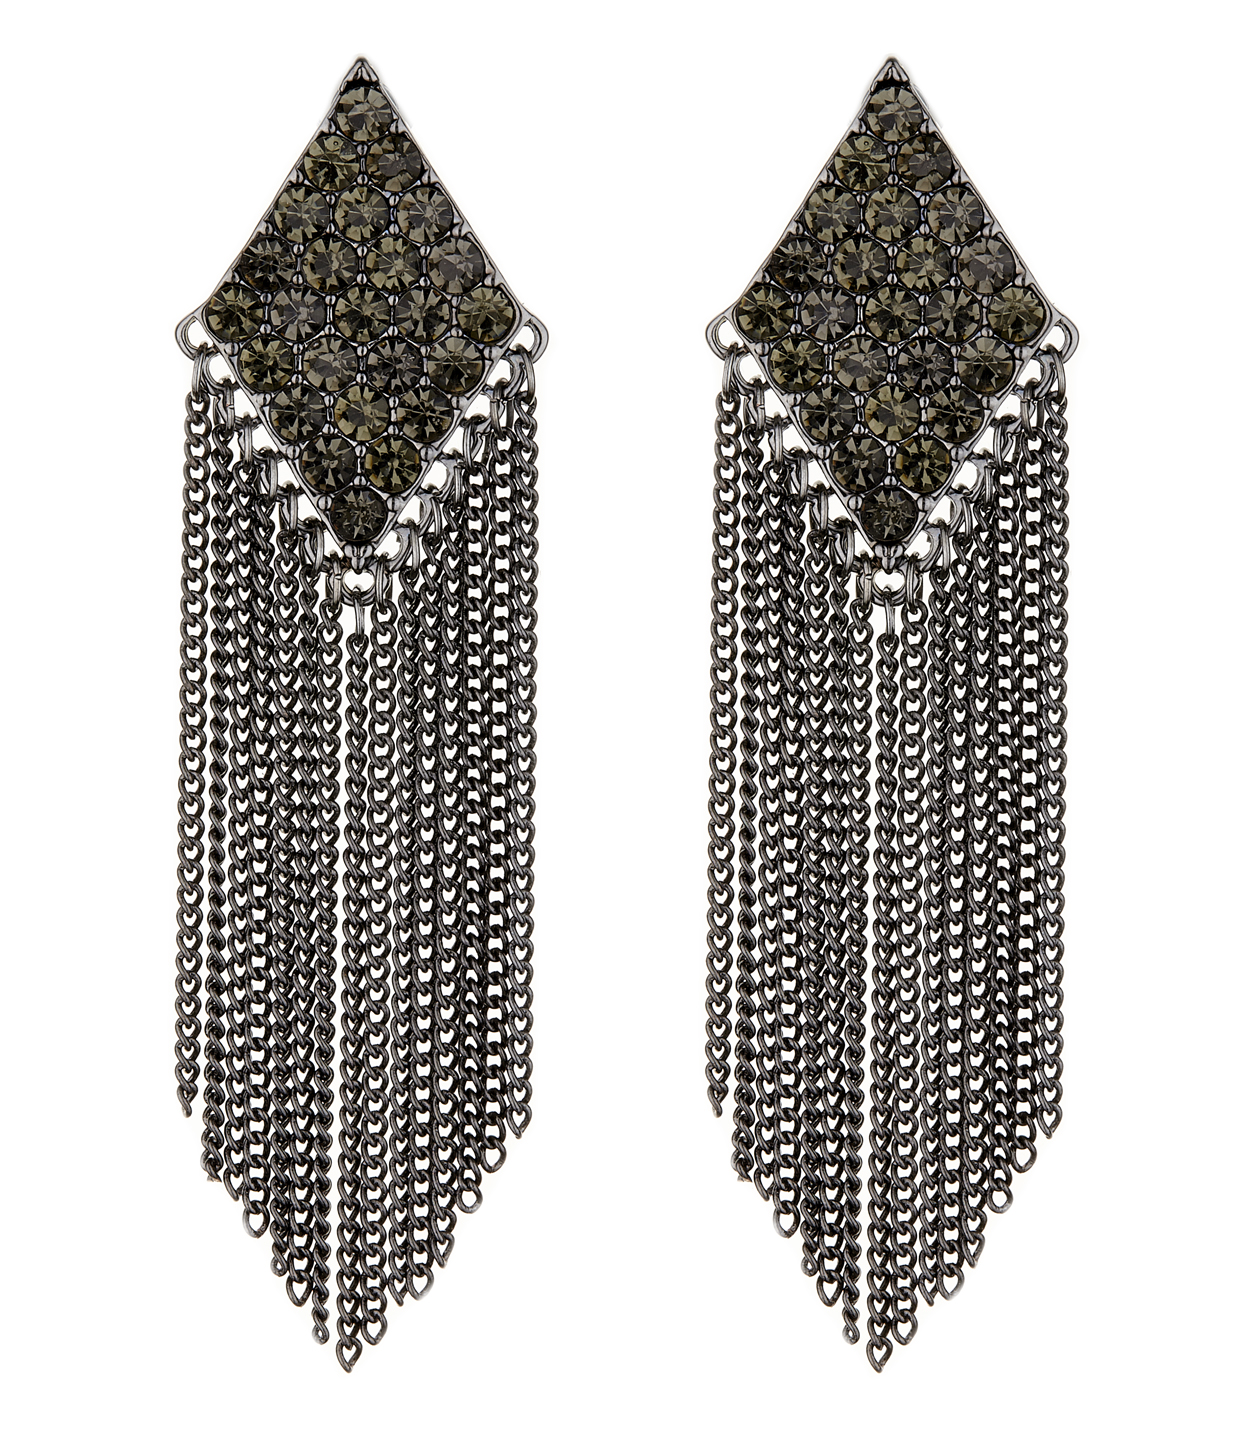 Clip On Earrings - Carys B - gunmetal grey earring with crystals and a chain fringe